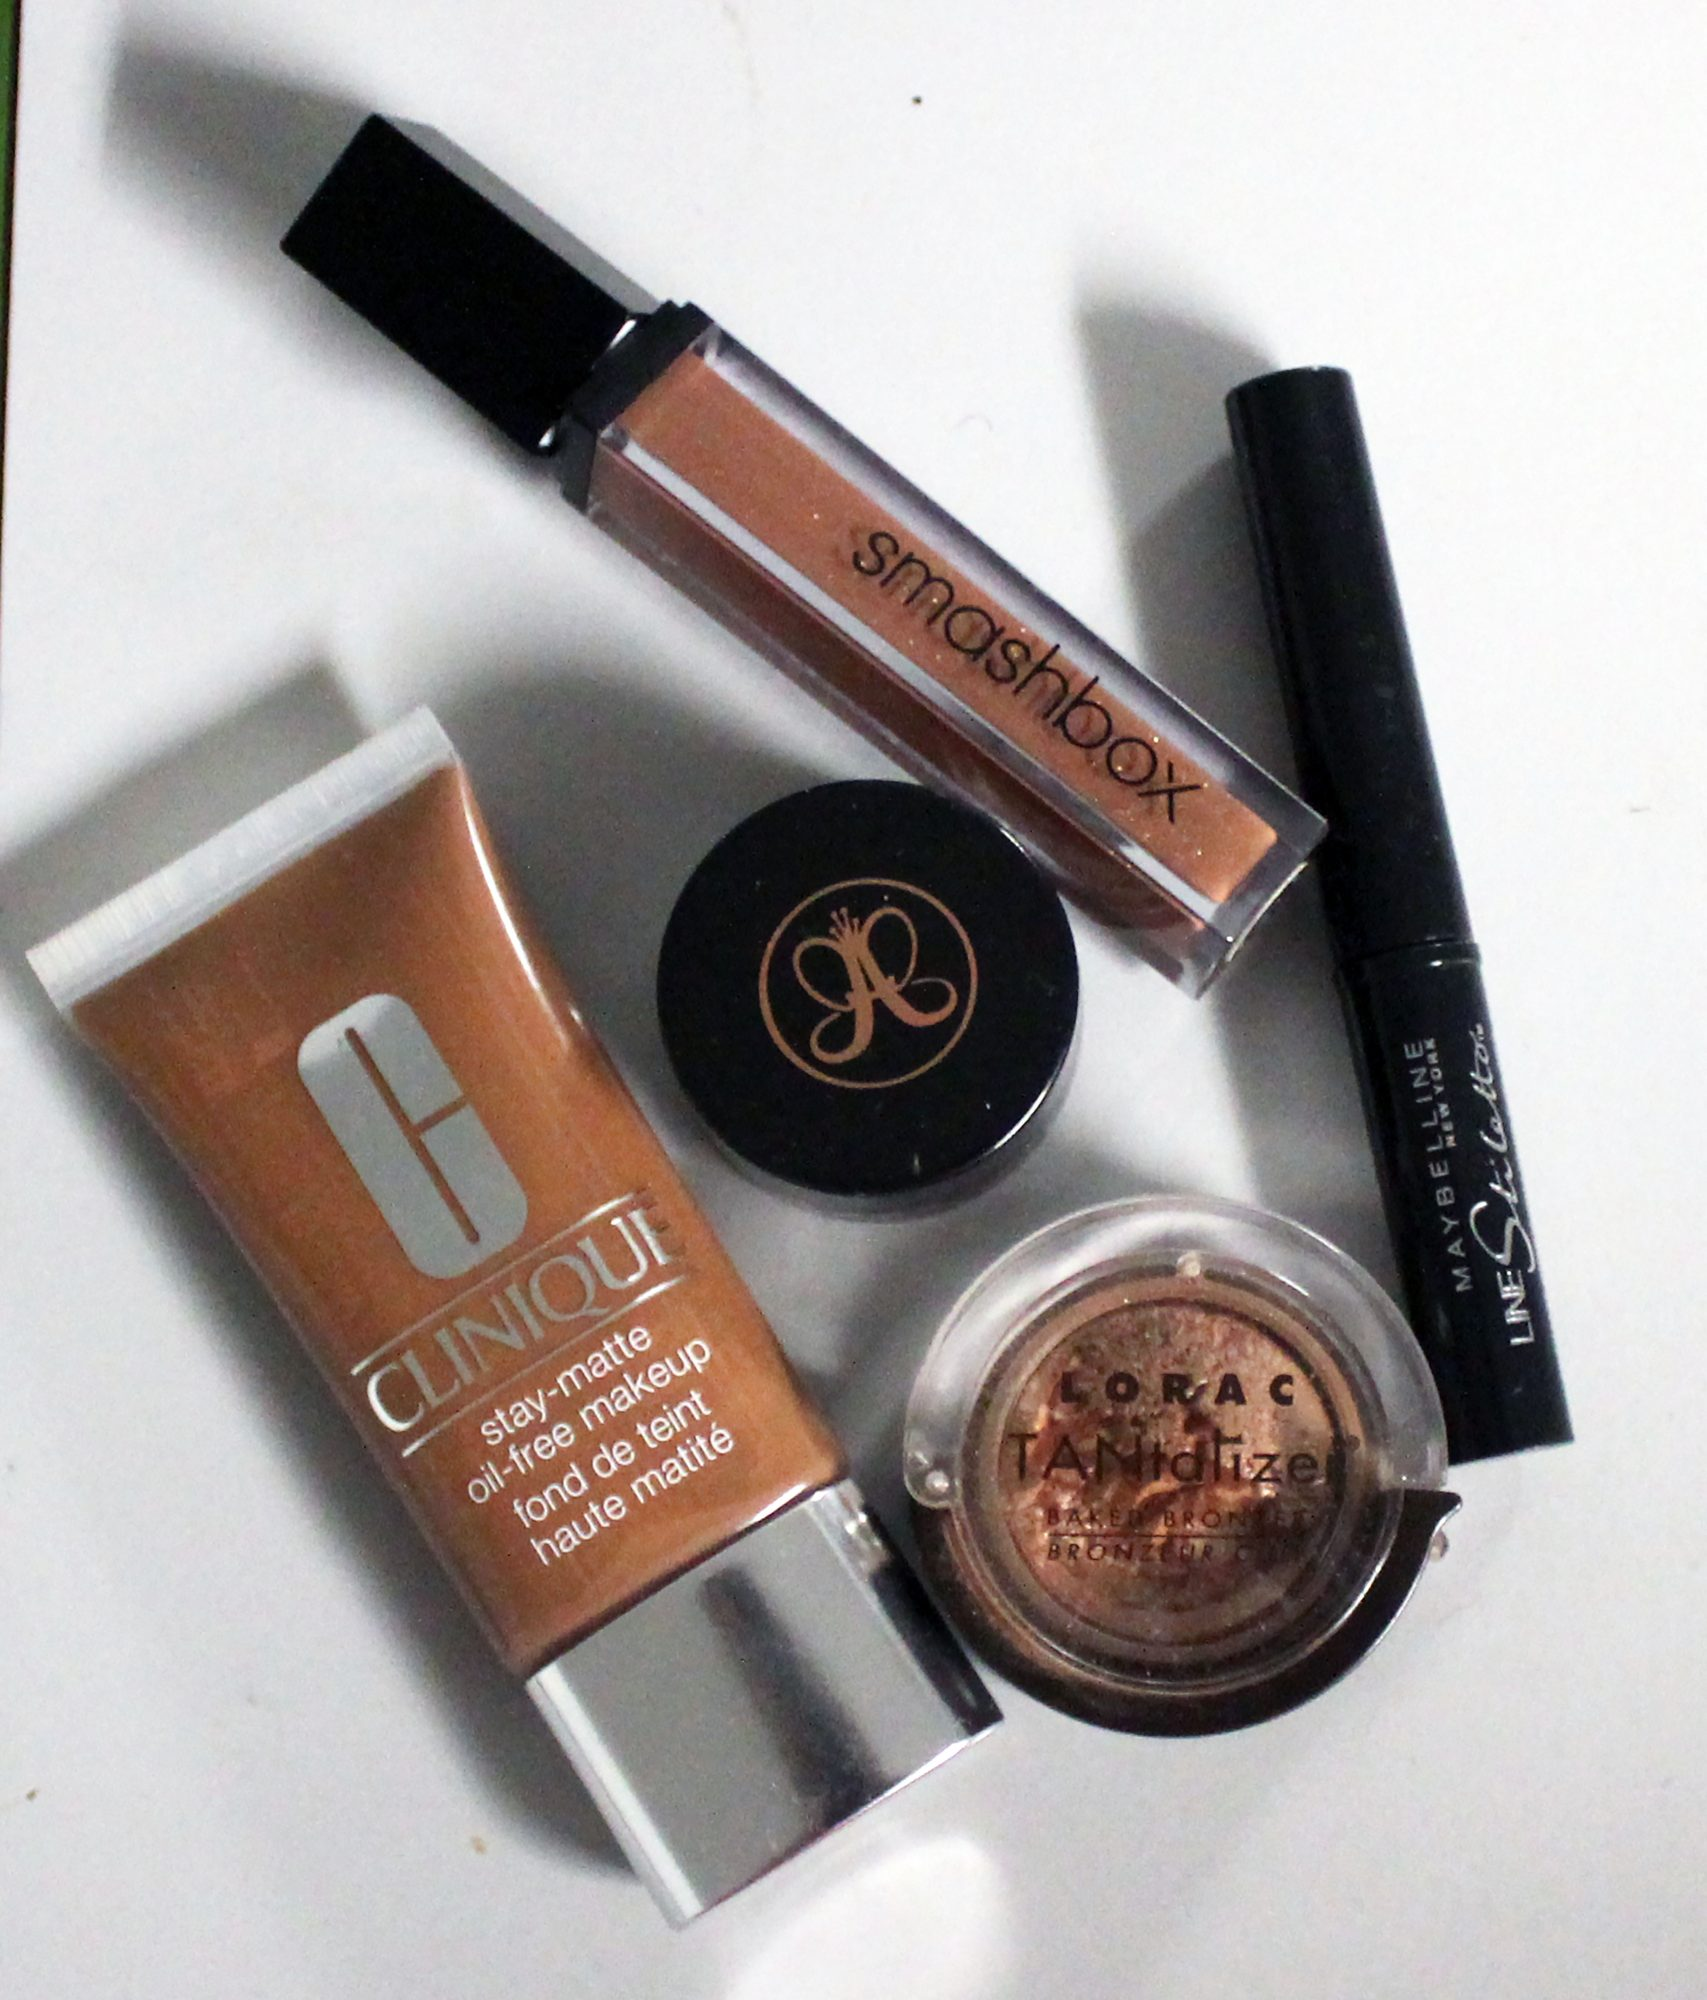 Some of my makeup essentials.